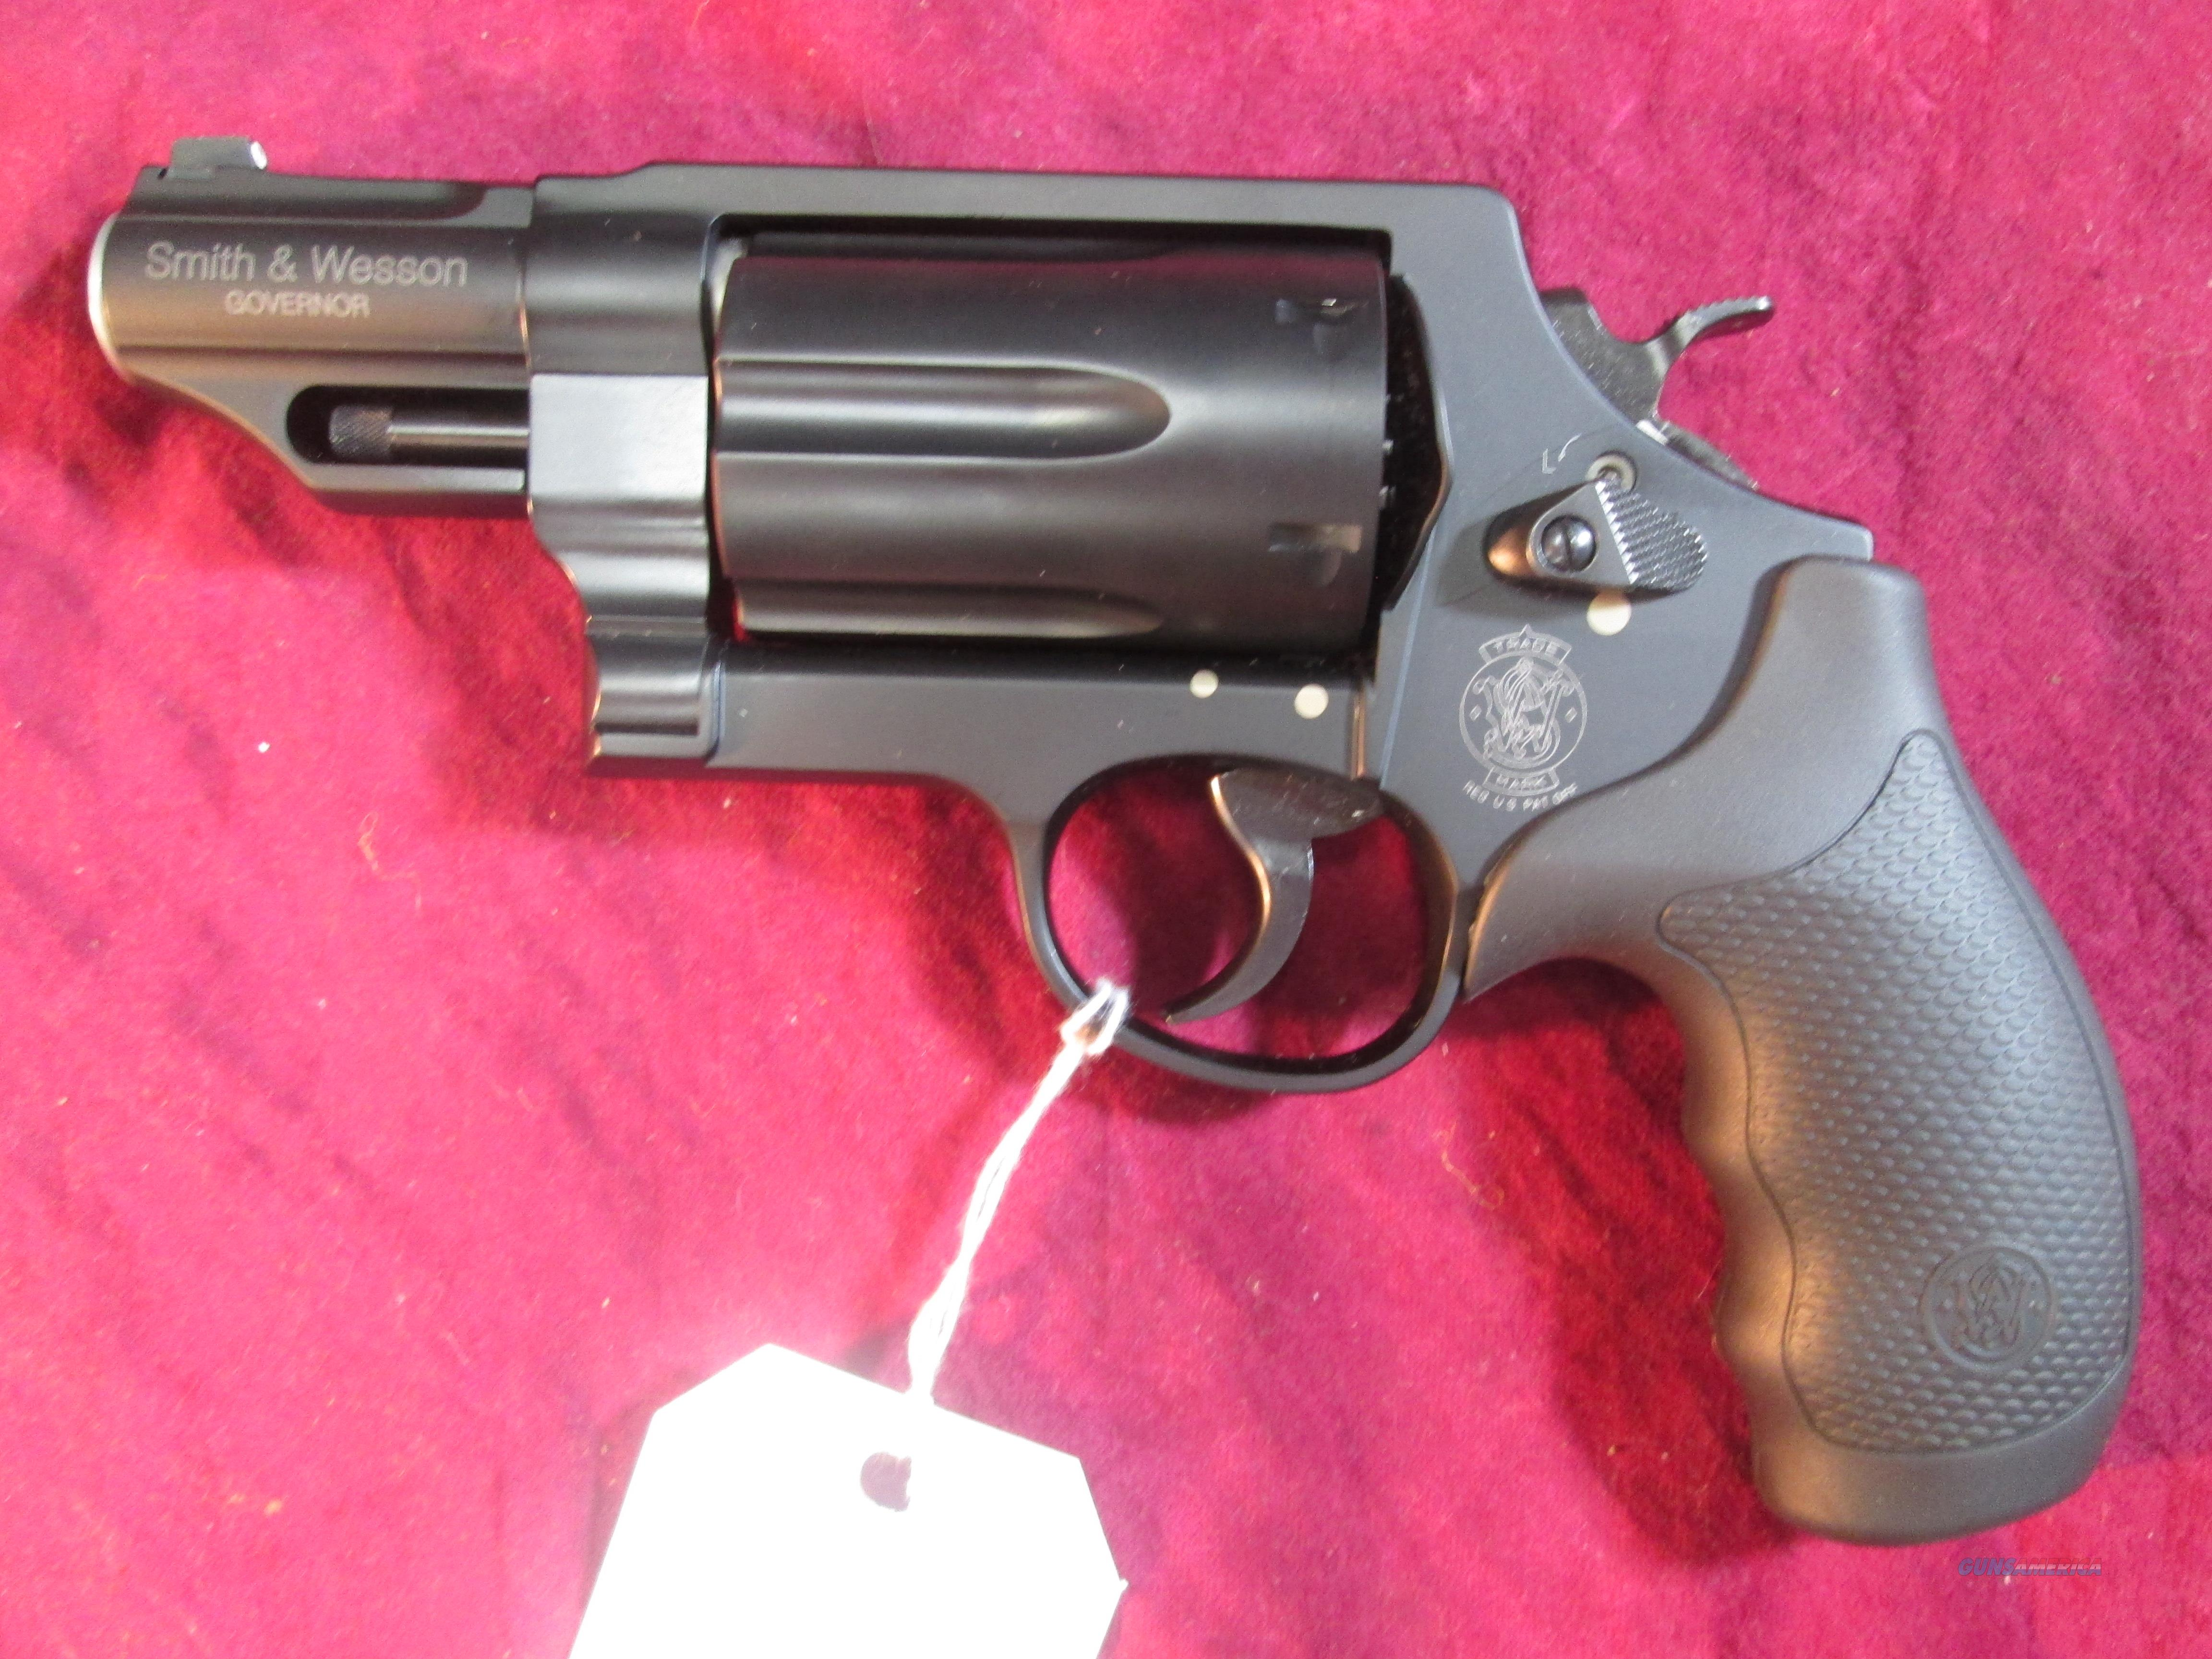 SMITH AND WESSON GOVERNOR BLACK,45COLT/45ACP/410G REVOLVER NEW (162410)  Guns > Pistols > Smith & Wesson Revolvers > Full Frame Revolver